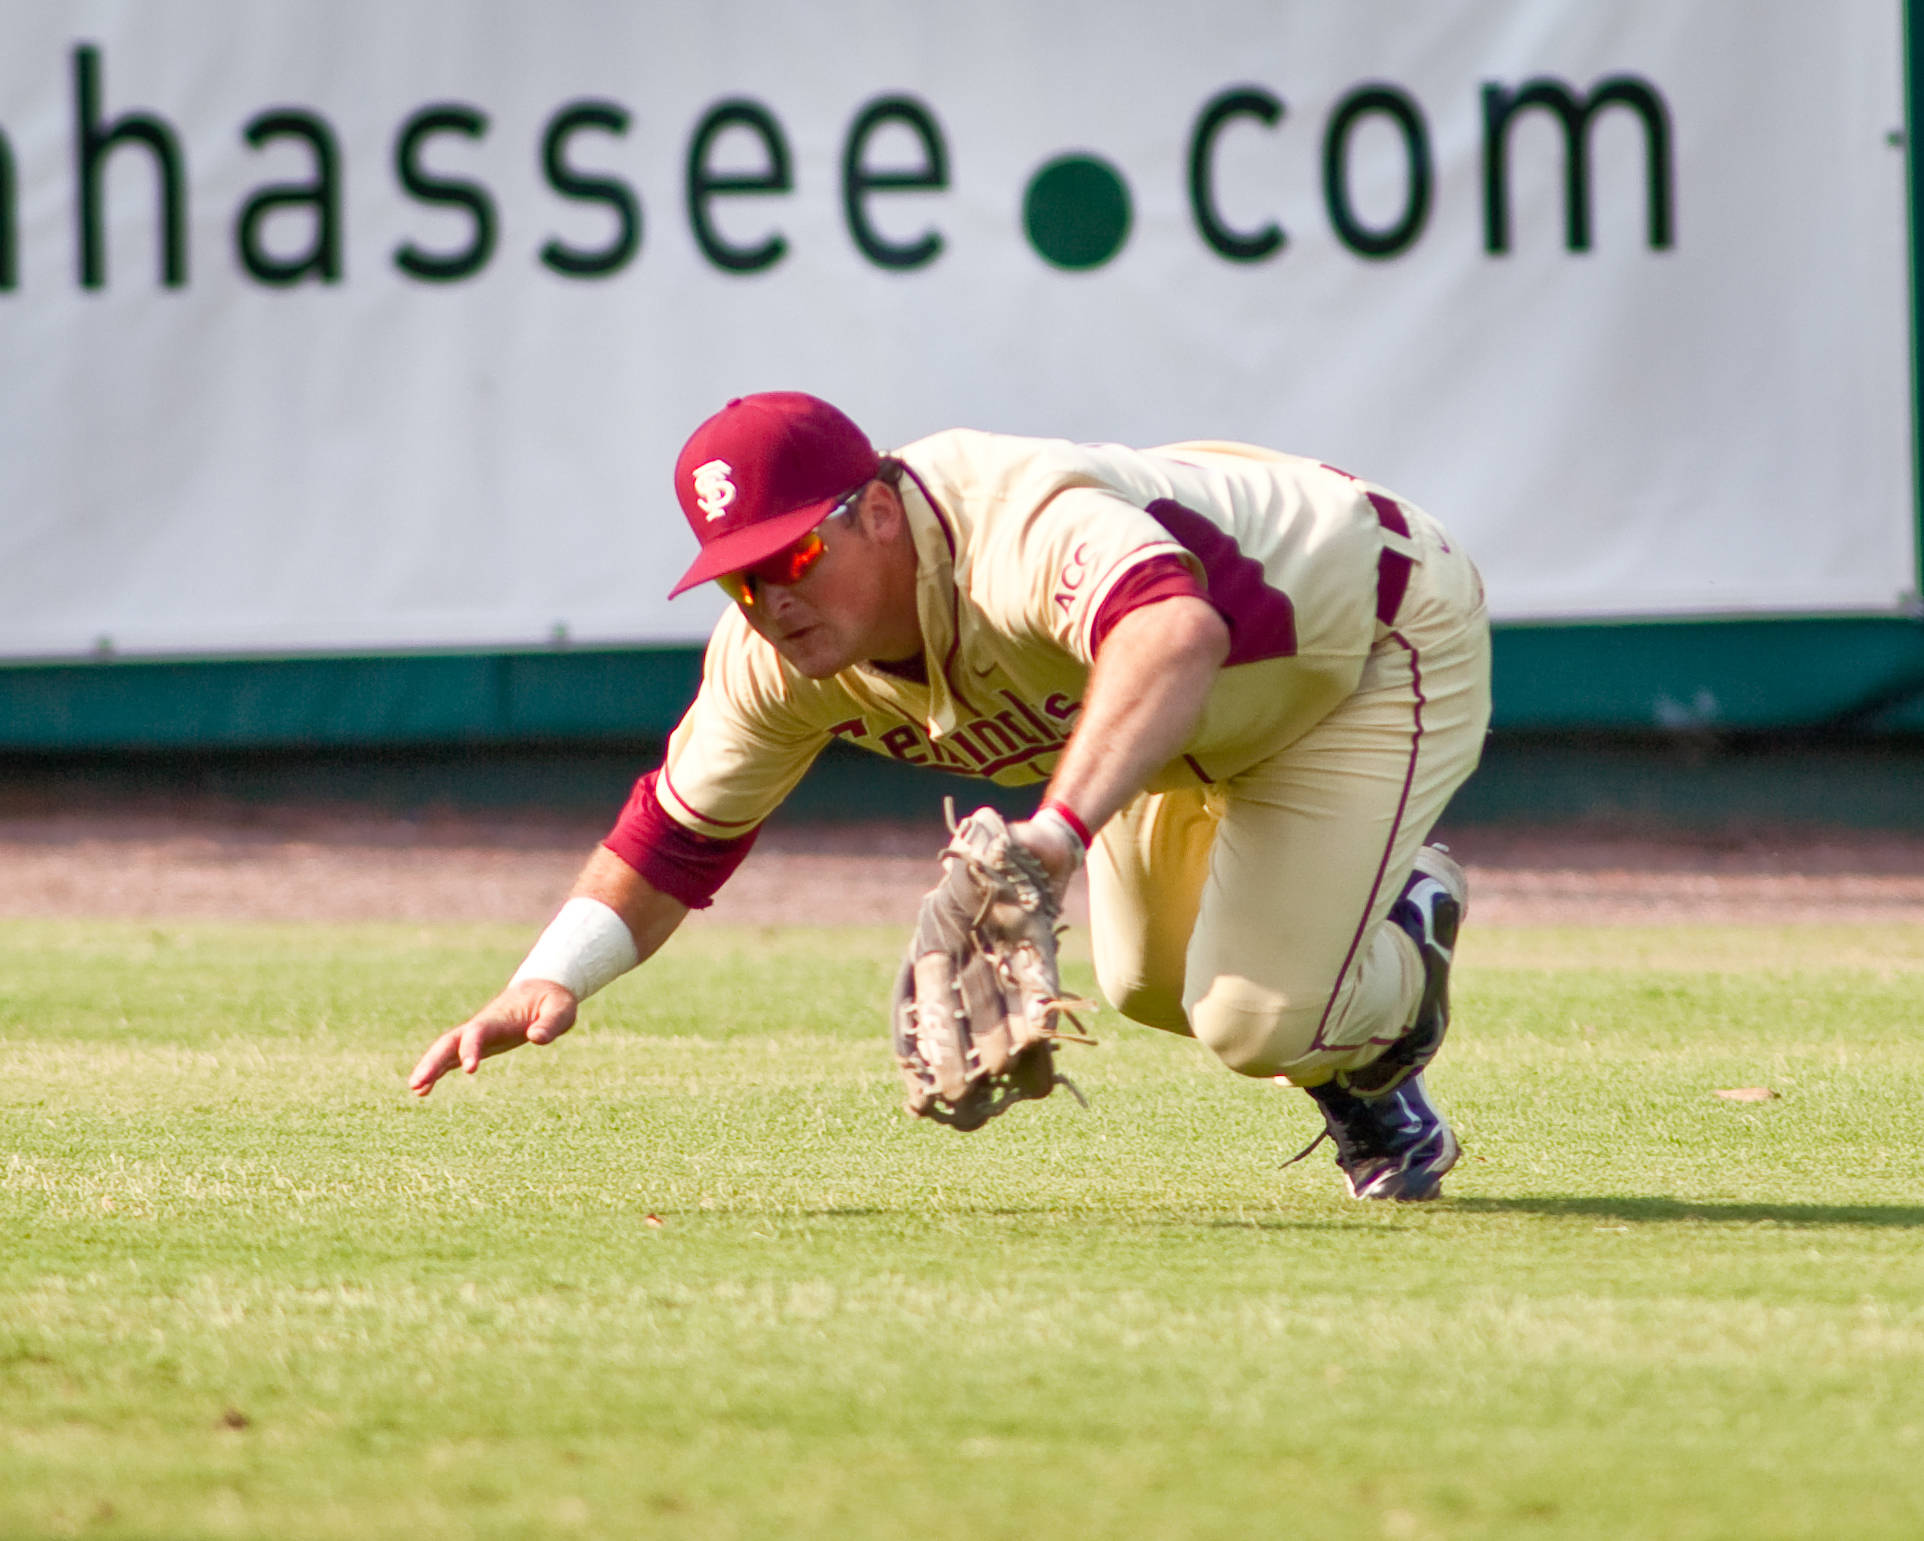 Stuart Tapley (27) makes an outstanding diving catch